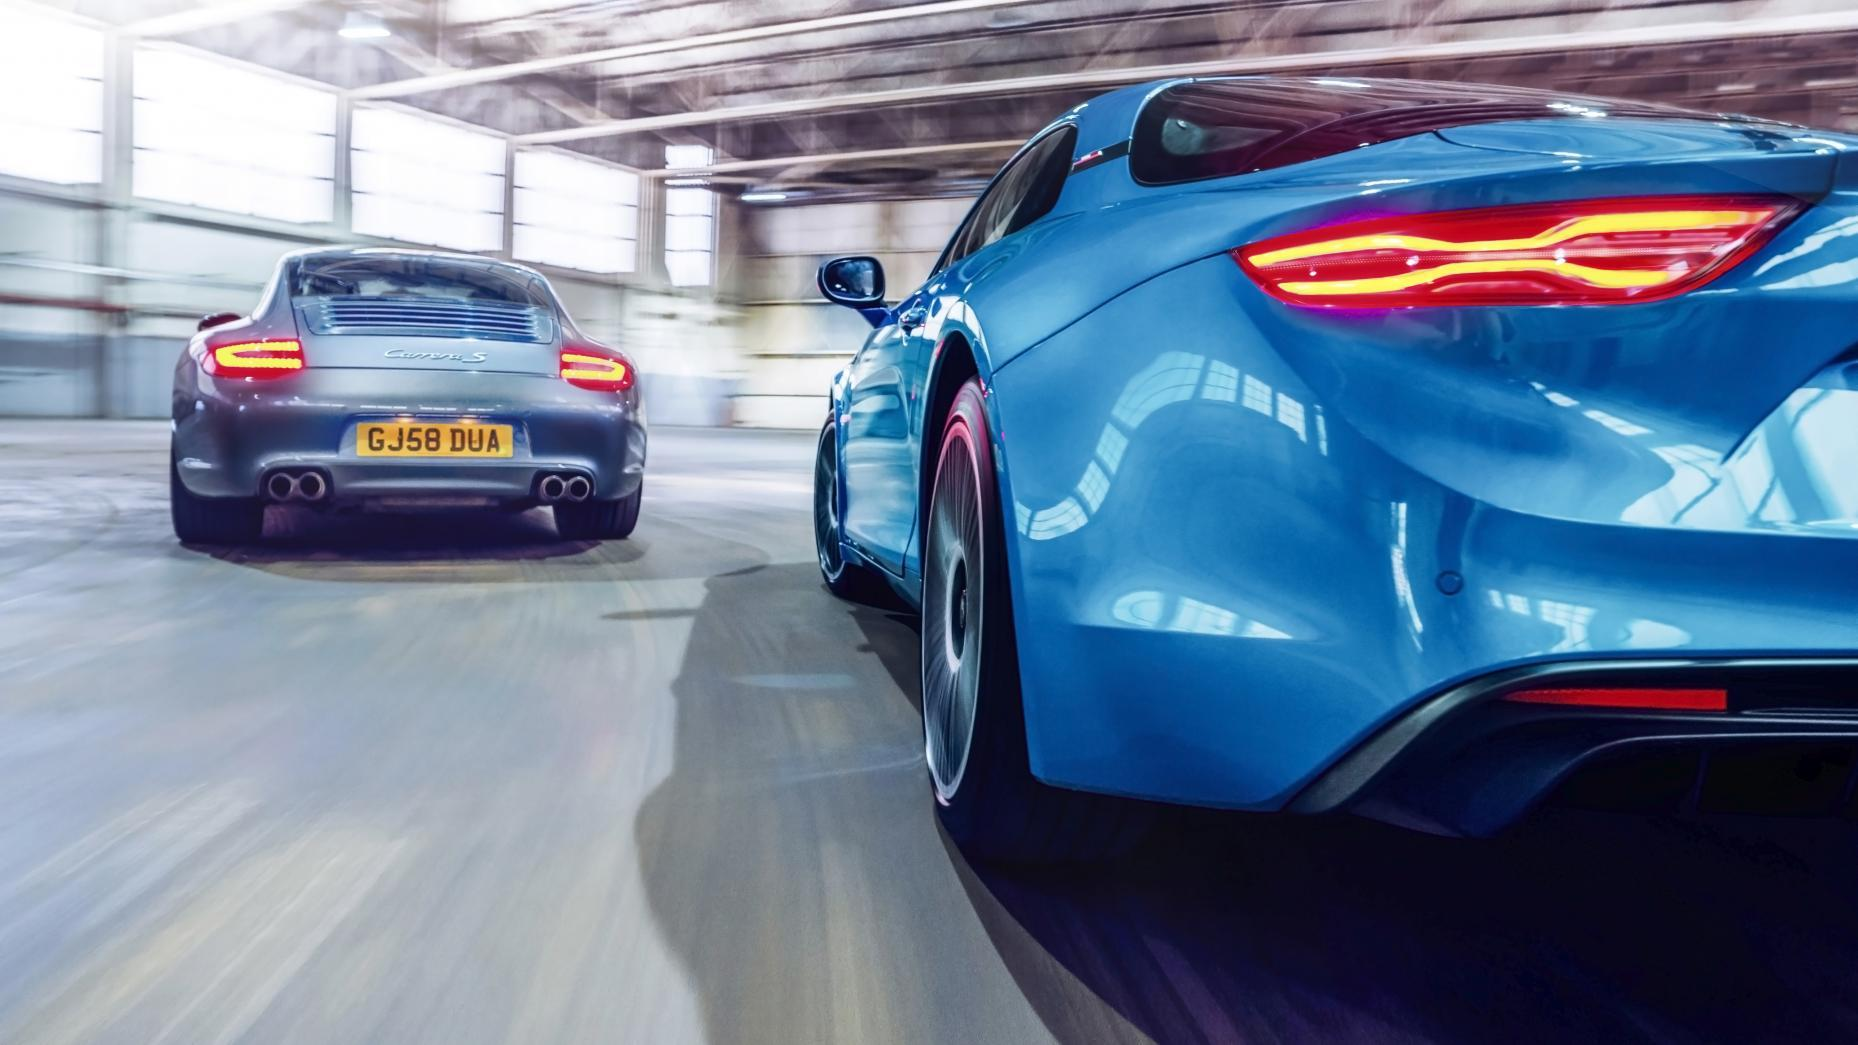 Porsche 911 Carrera S vs. Alpine A110